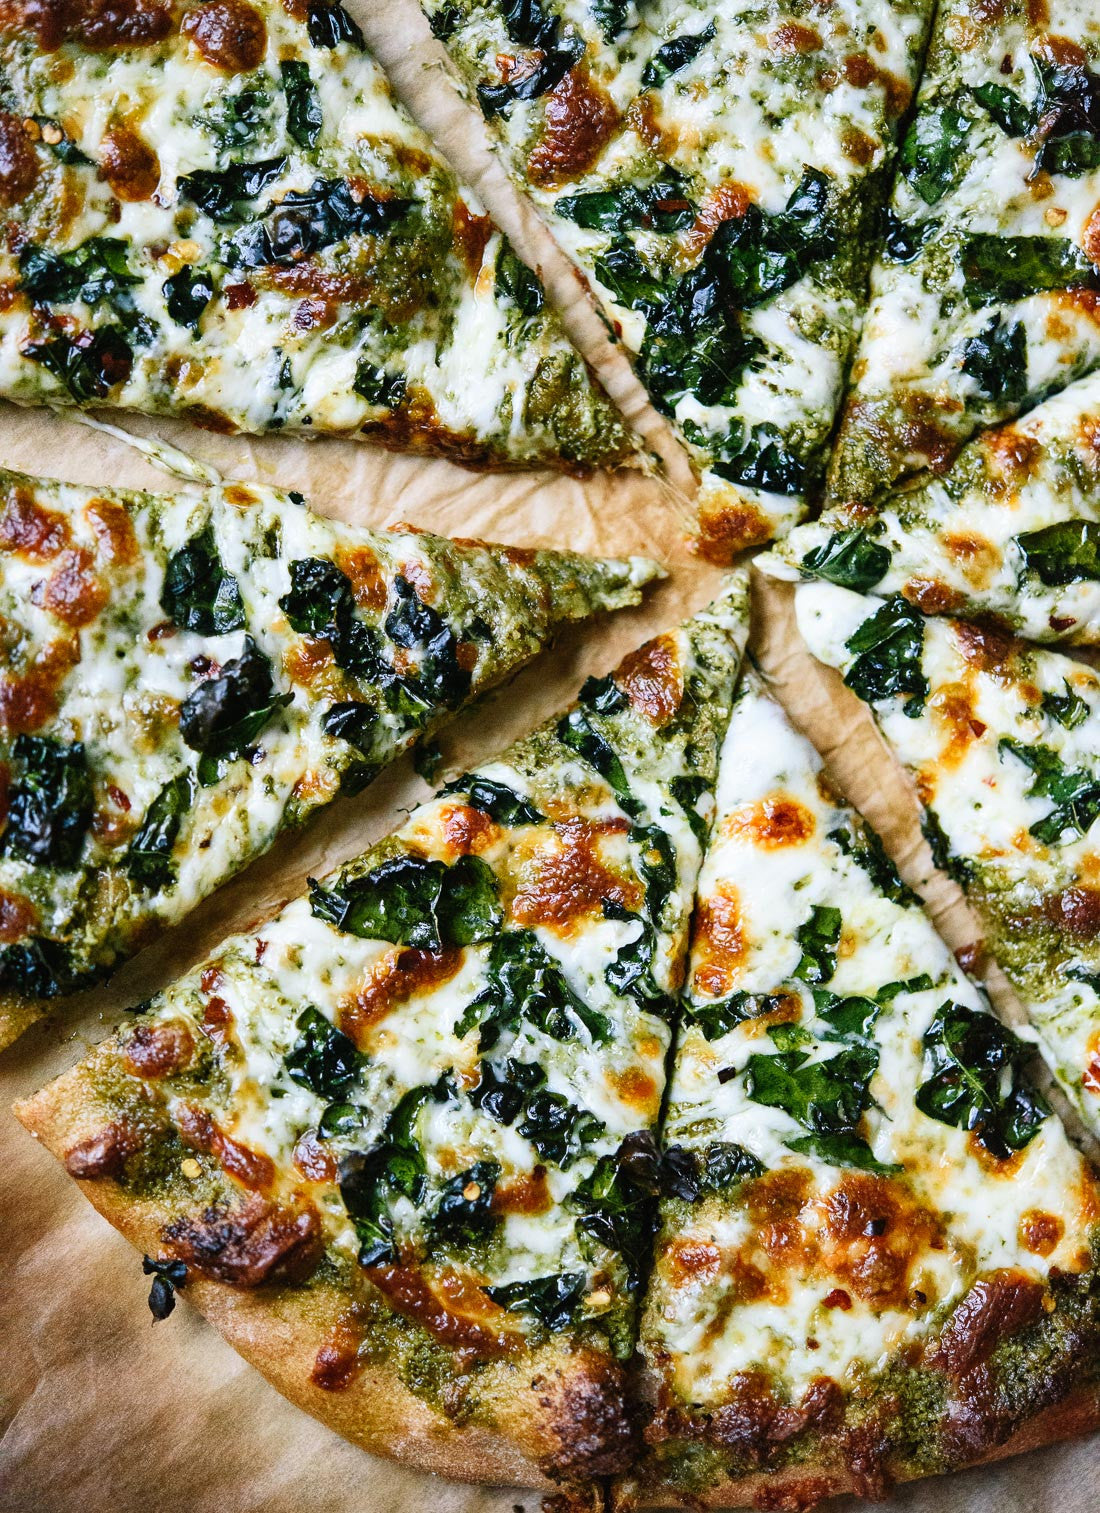 #RecipeSaviours: Kale Pesto Pizza